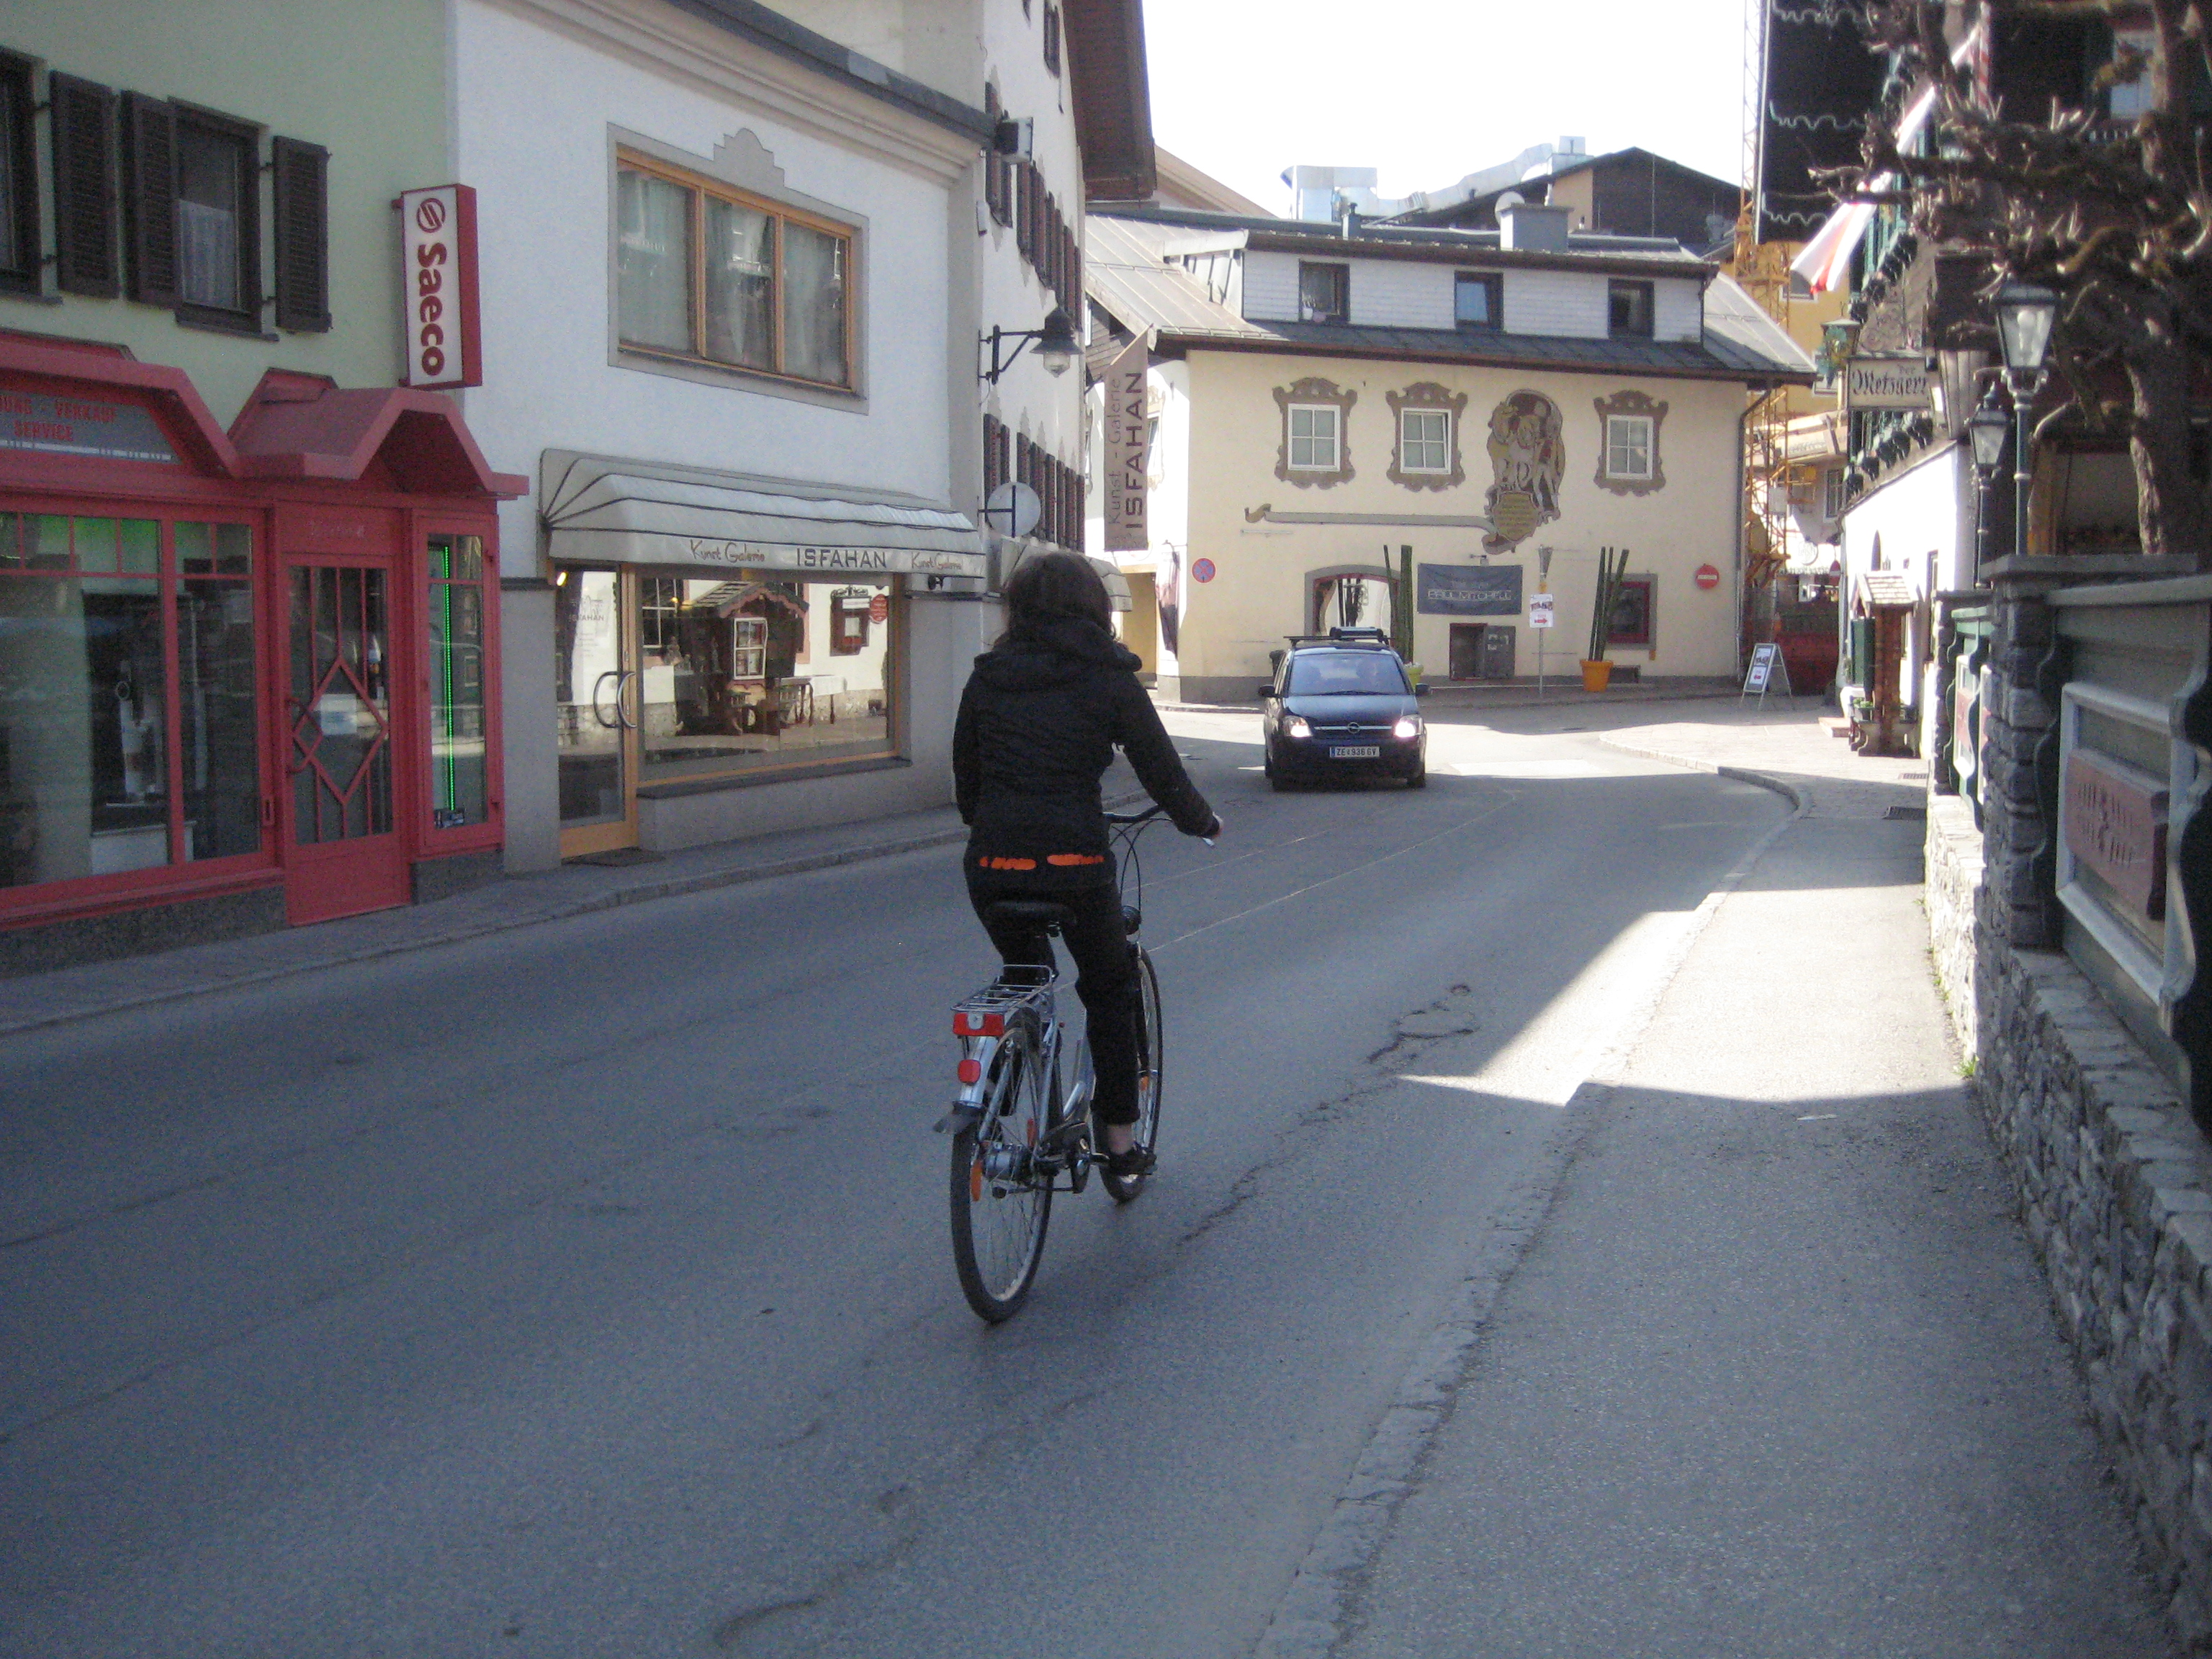 Me! Loving life atop two-wheels on the streets of a small Austrian town